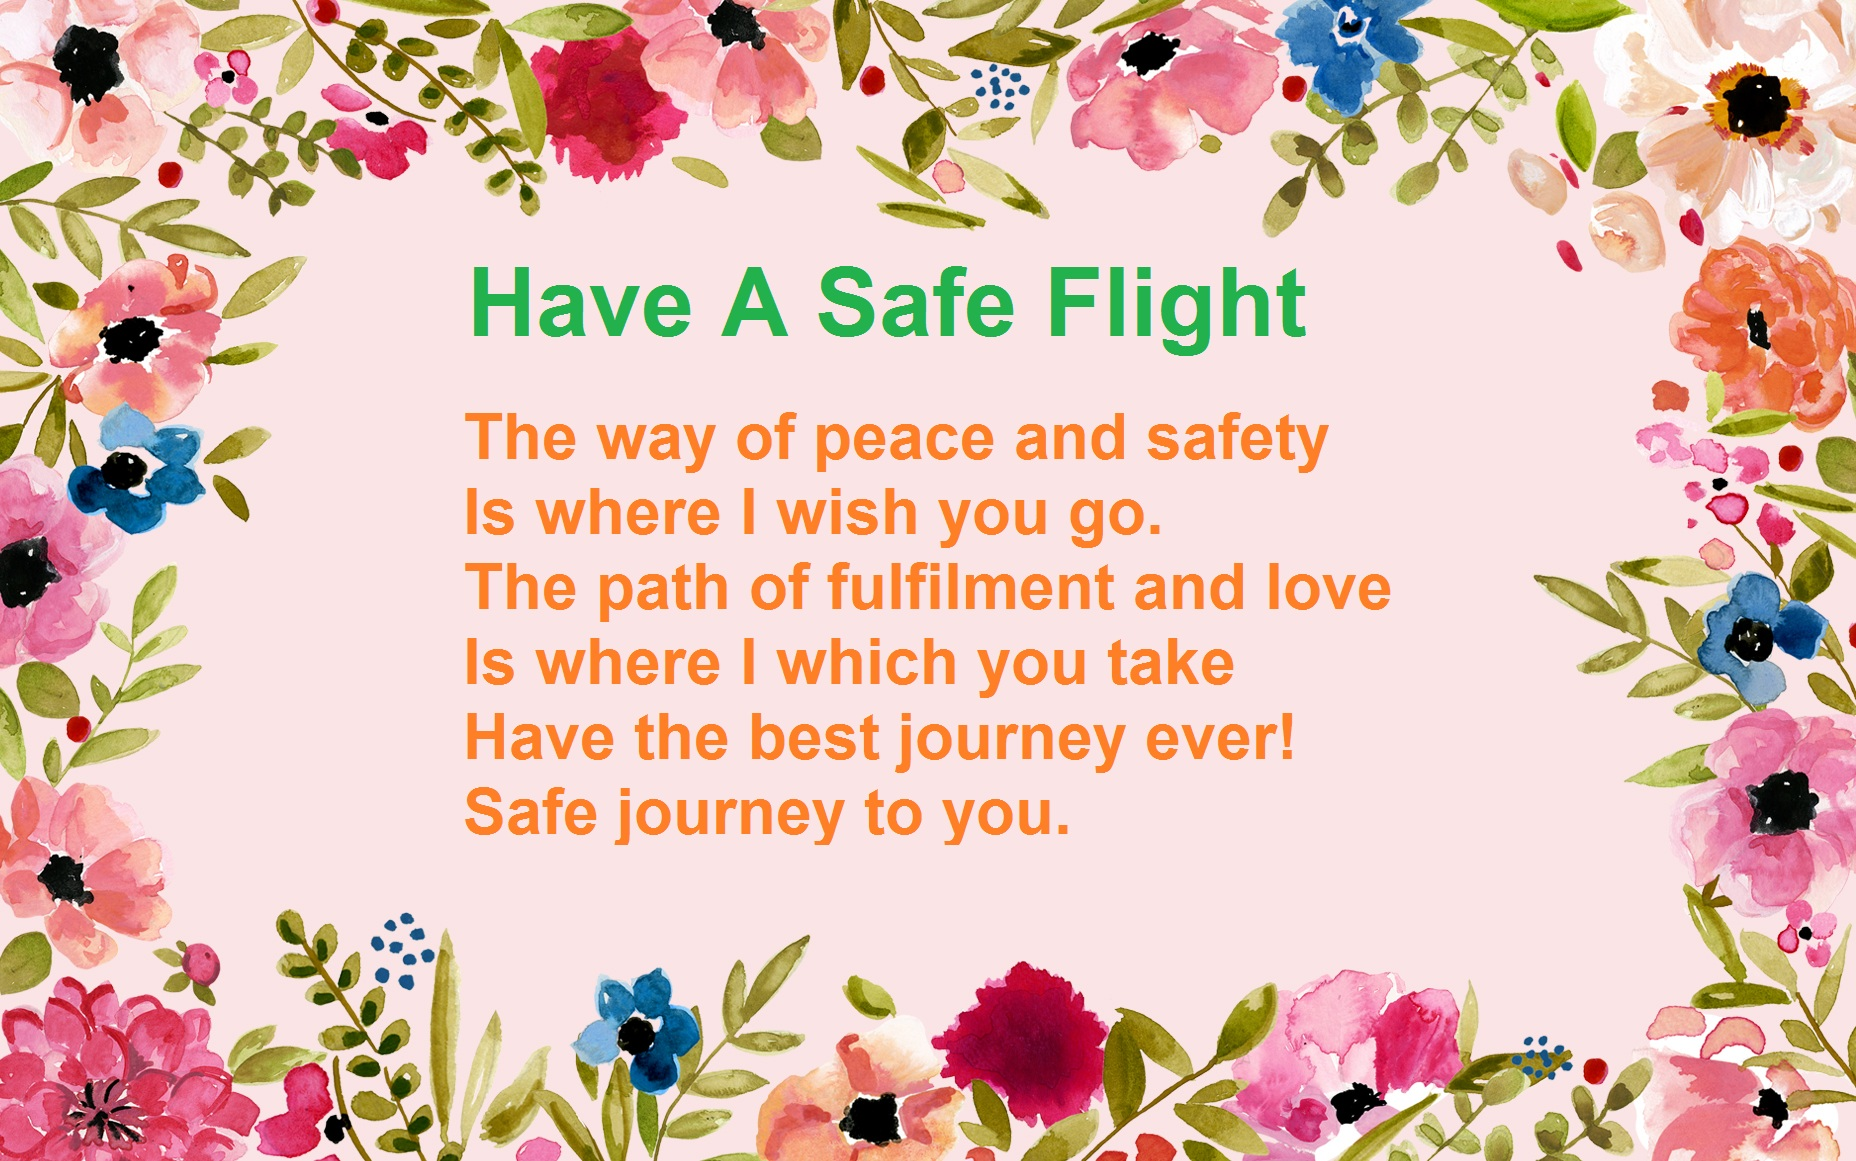 Have-A-Safe-Flight-Quotes-and-acImages